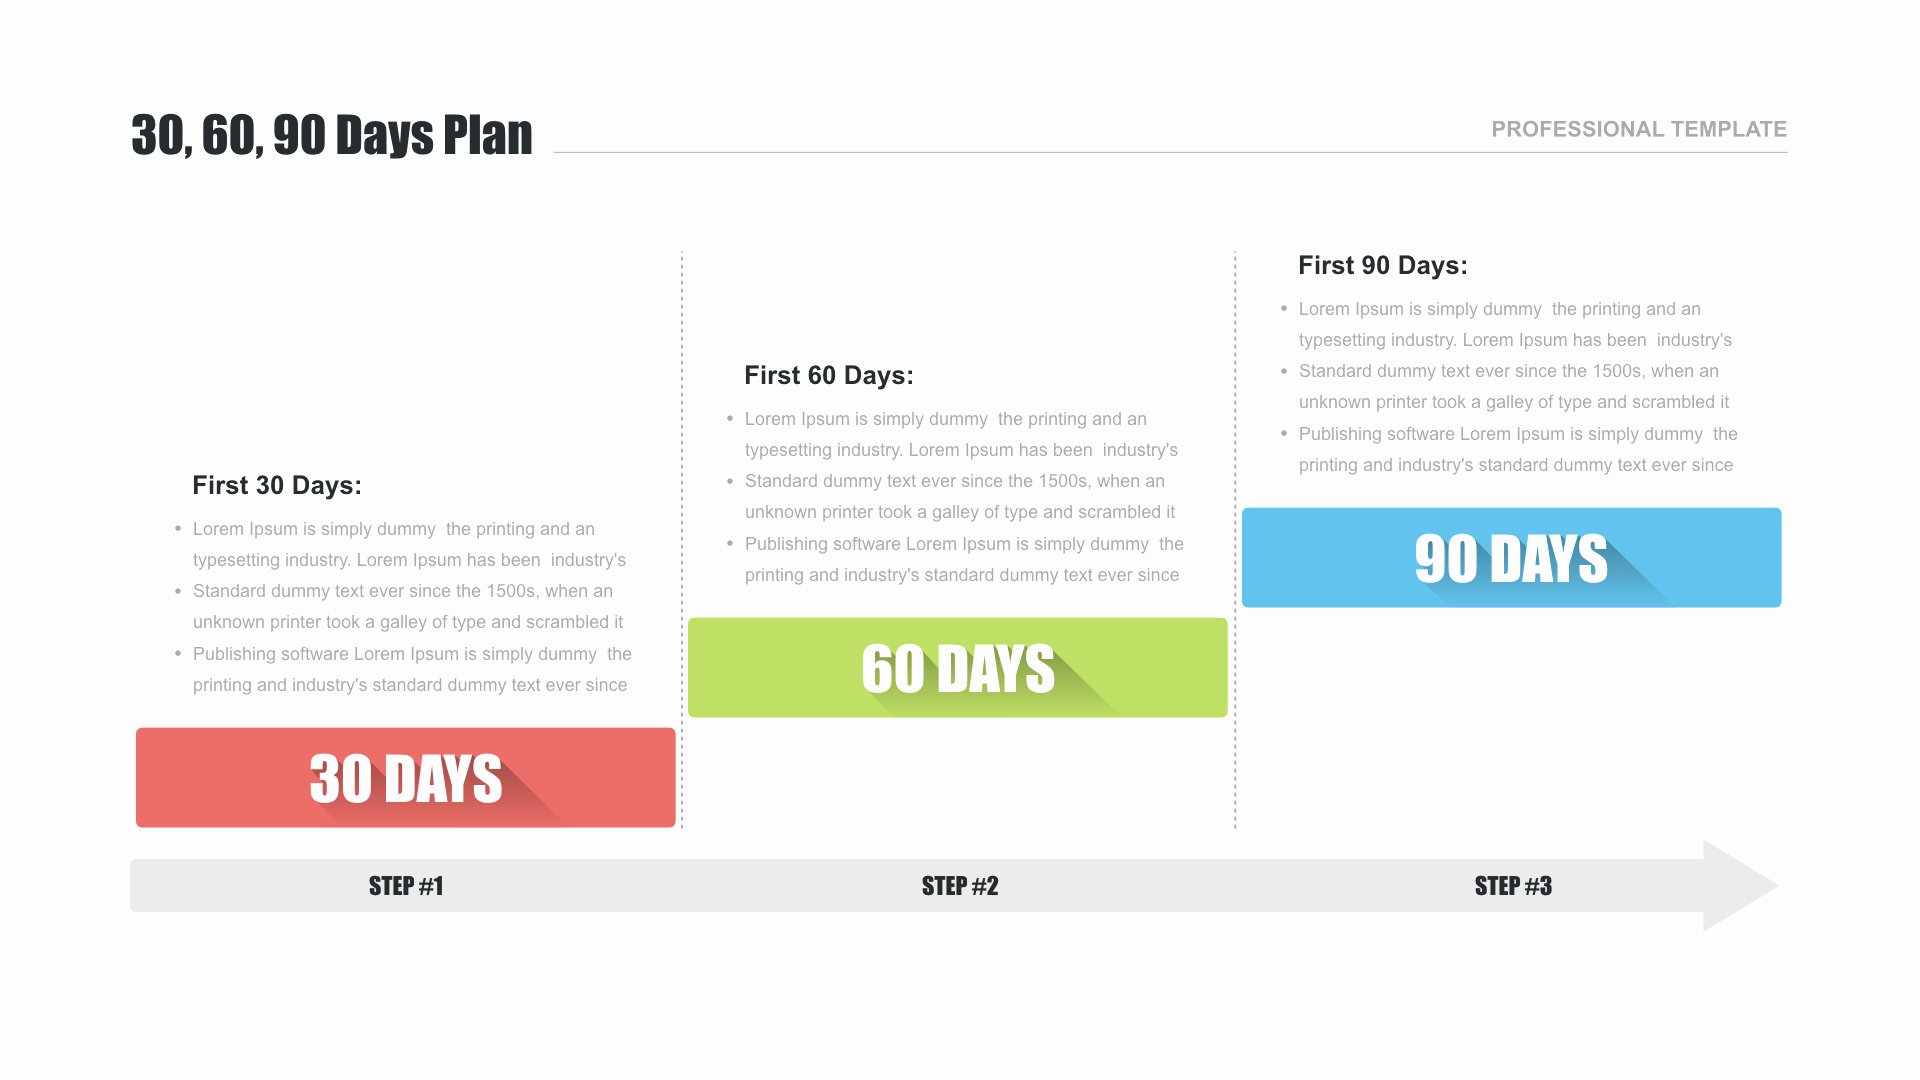 90 Day Planner Template New 30 60 90 Day Plan Template for Google Slides Free